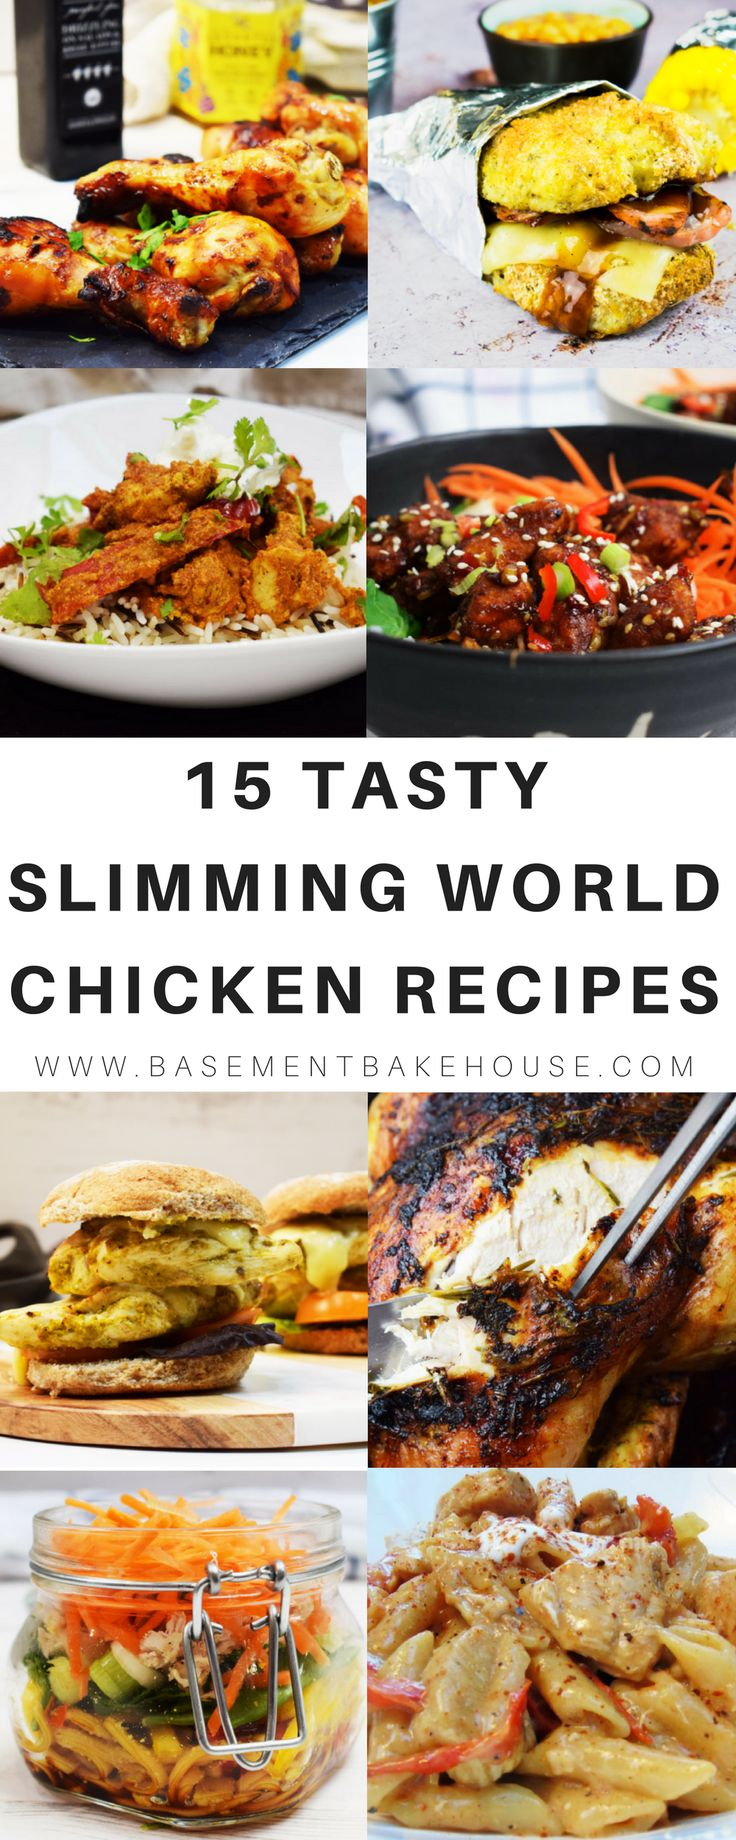 15 of the BEST Slimming World Chicken Recipes to try this week! Shake things up in the kitchen with some interesting healthy recipes and lots of inspiration for family friendly meals! From lunch time meal prep to comfort food dinners! - Basement Bakehouse